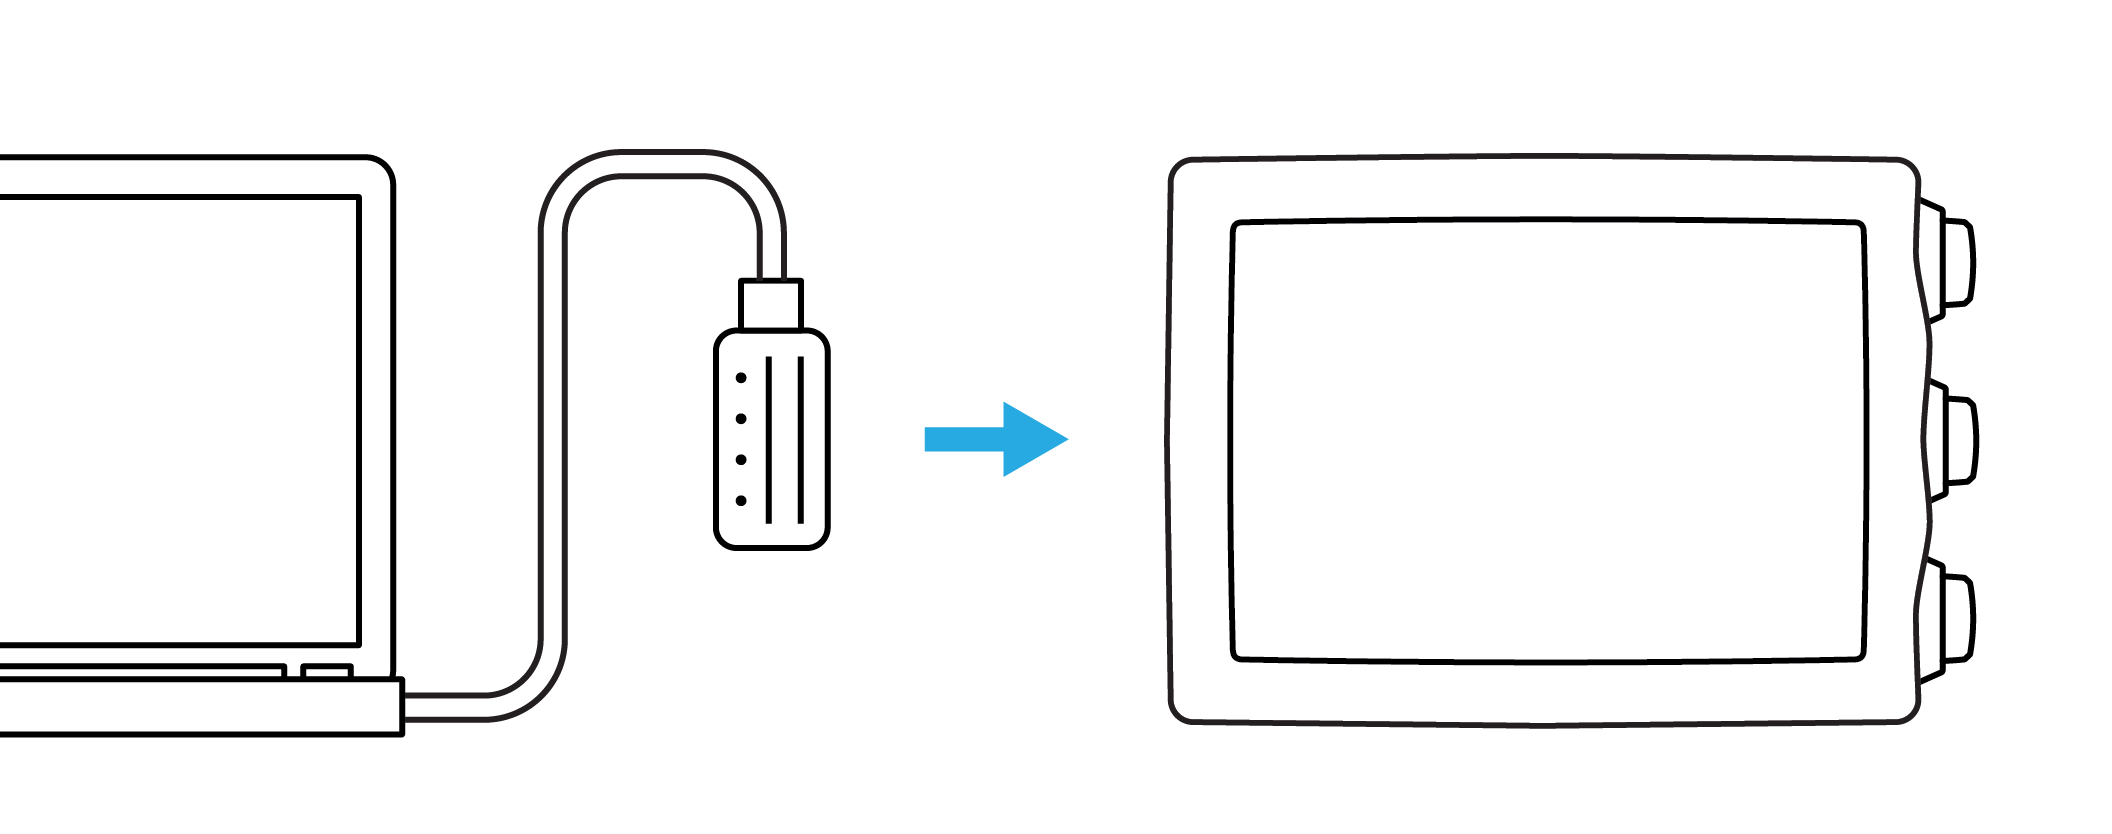 connect USB cable EON Core new